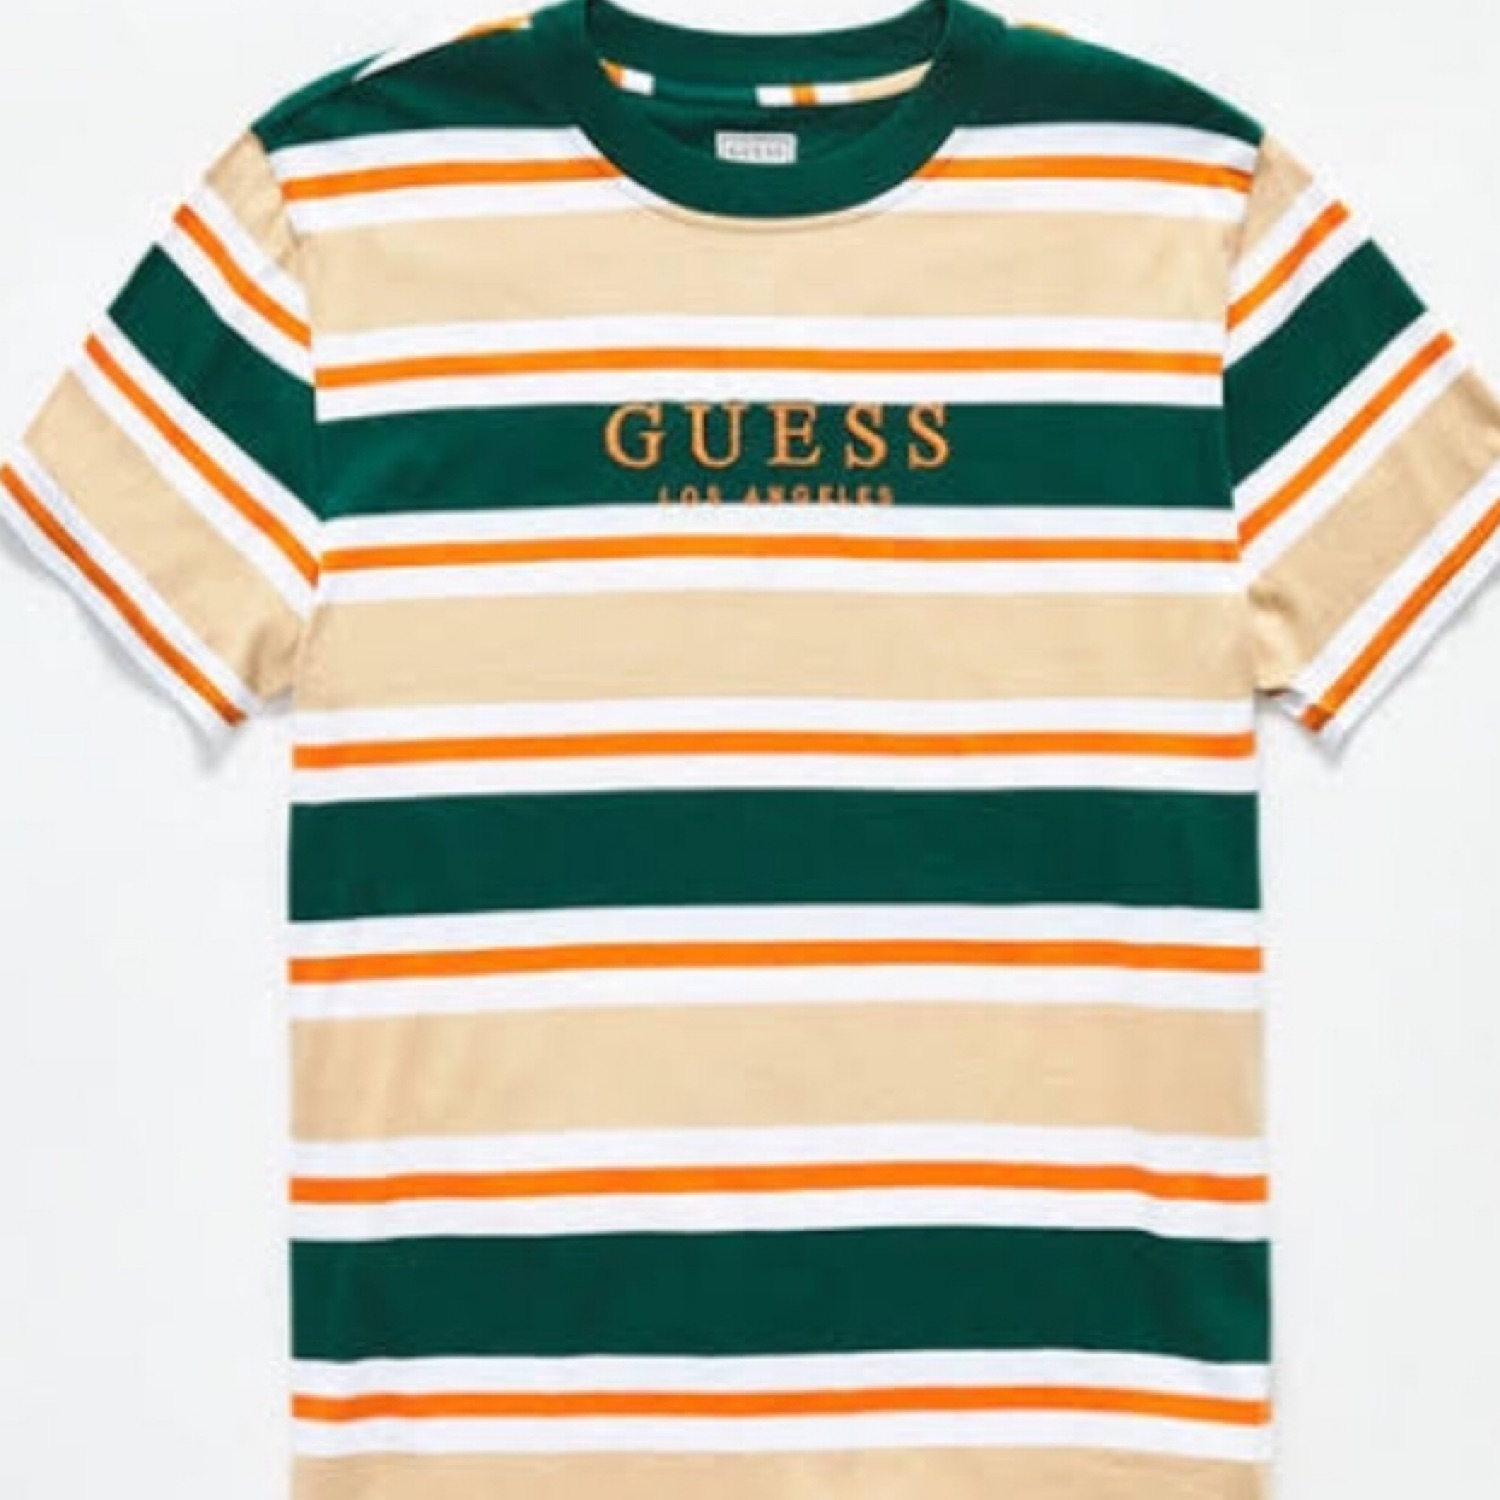 1b0486663 Guess Brand New Oversized Striped Tee